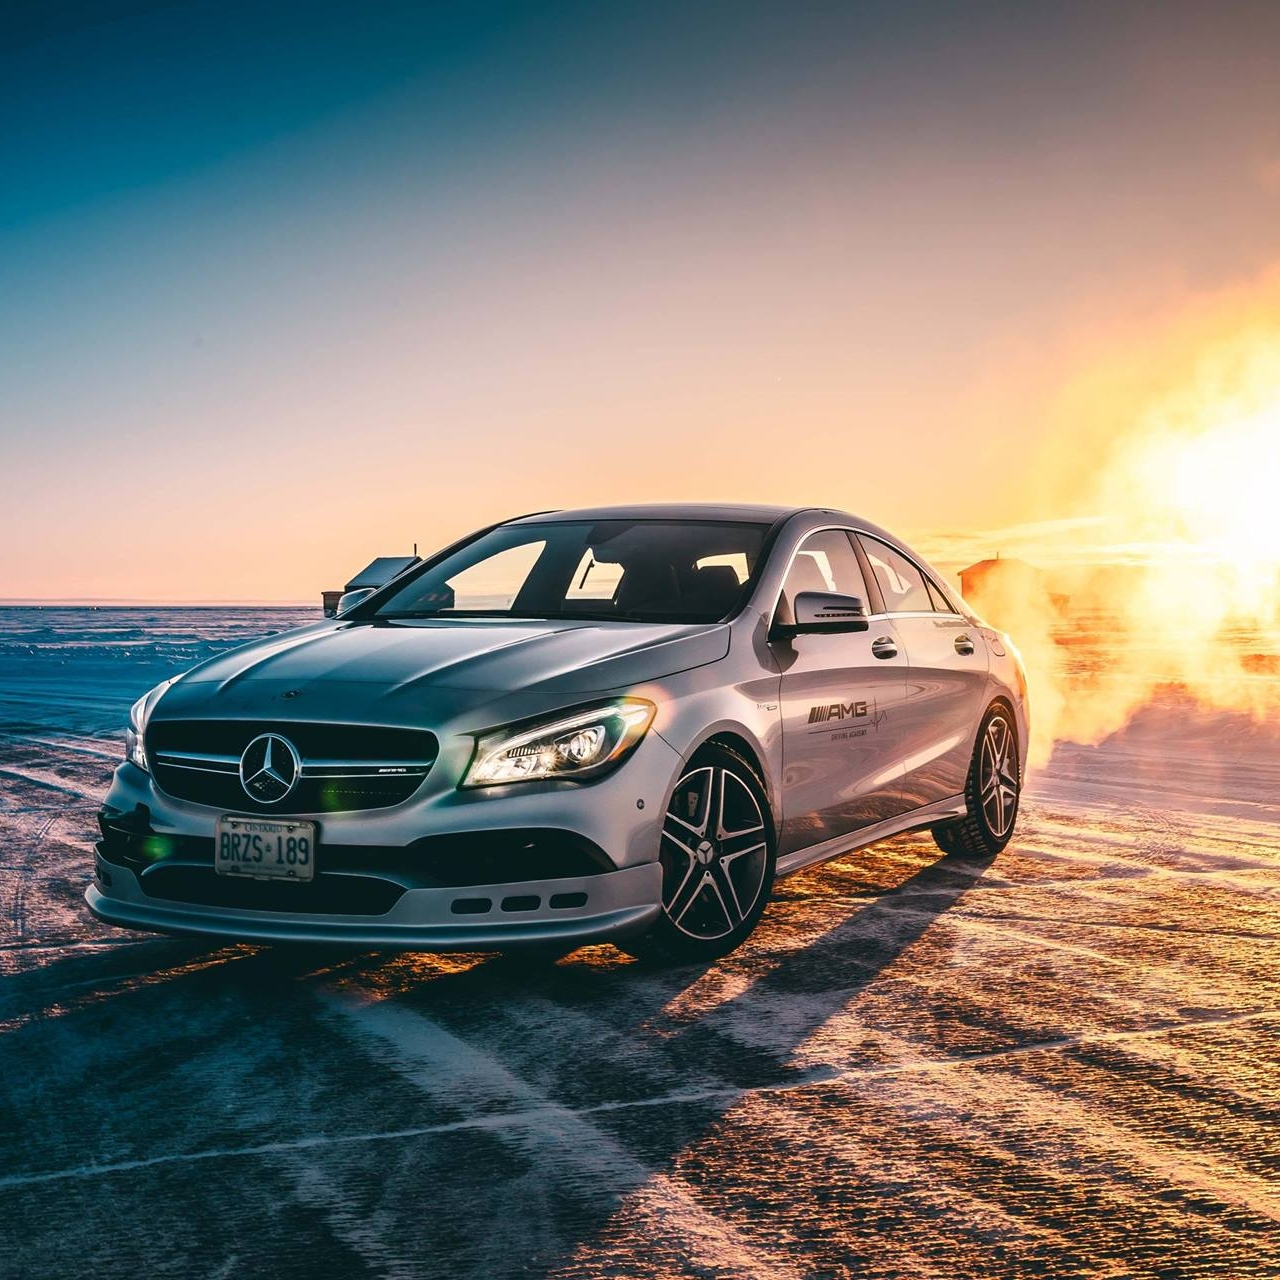 - We worked with R/GA and Mercedes-Benz on this amazing 360/VR experience featuring stunt driving from the AMG Driving Academy. We fully tapped into the new format, providing a dynamic, ambisonic/360 score and soundscape to this icy adventure - read more & watch with headphones to get the full effect!/// 360/VR spatialized + head-tracked original score, sound design, final mix